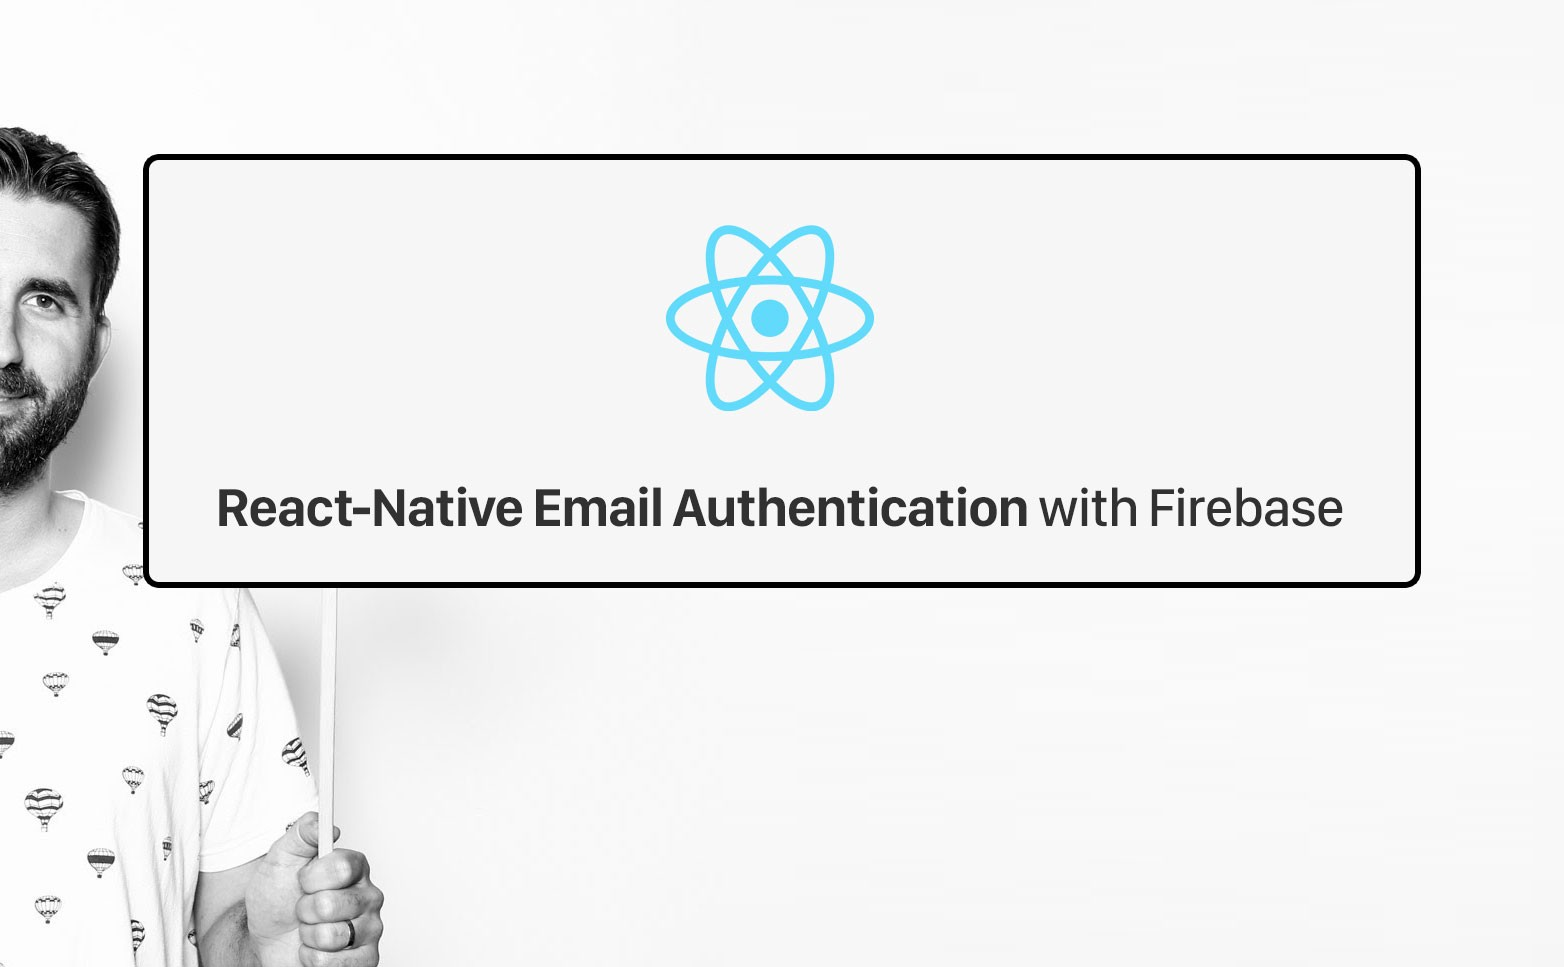 React-Native Email Authentication with Firebase - DailyJS